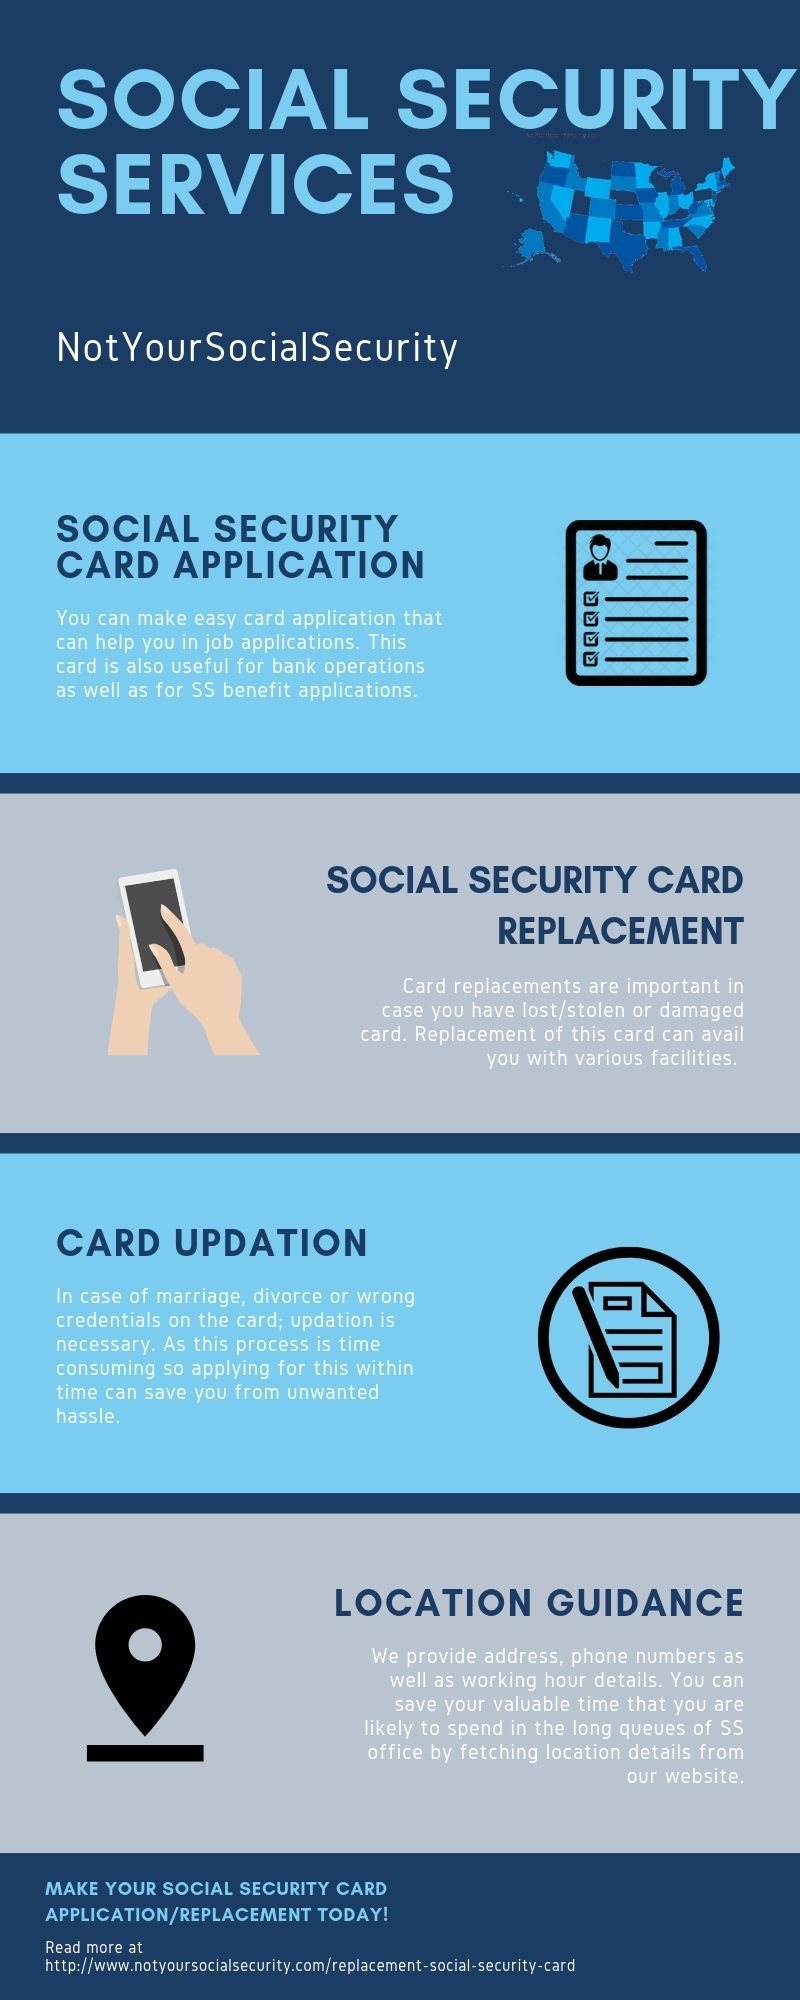 NotYourSocialSecurity provides you information that can